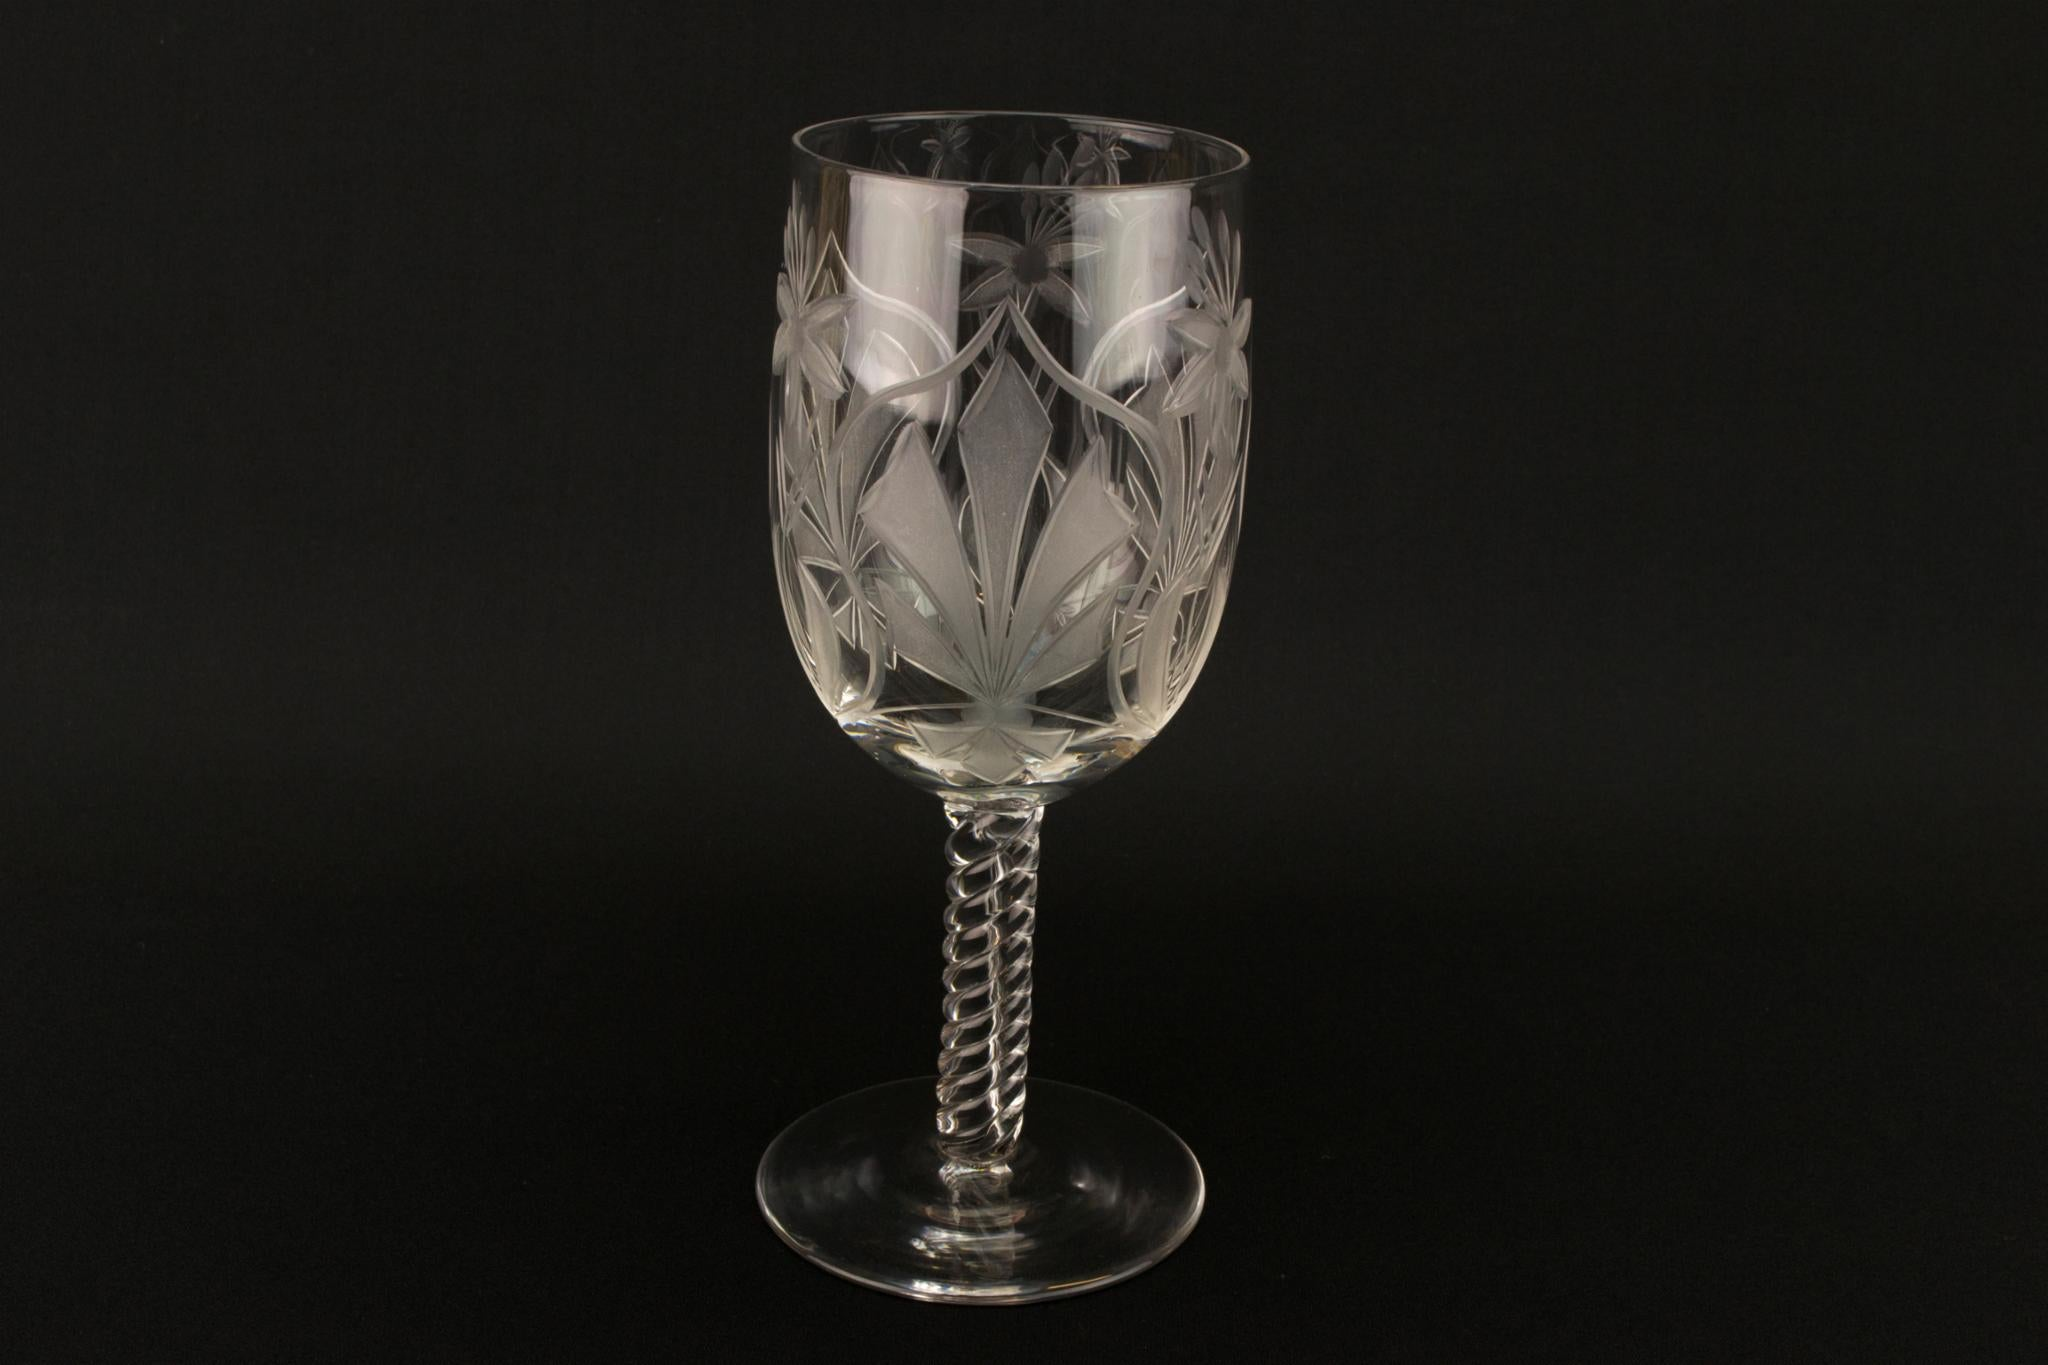 Airtwist Stem Cut Decoration Wine Glass, English 1930s